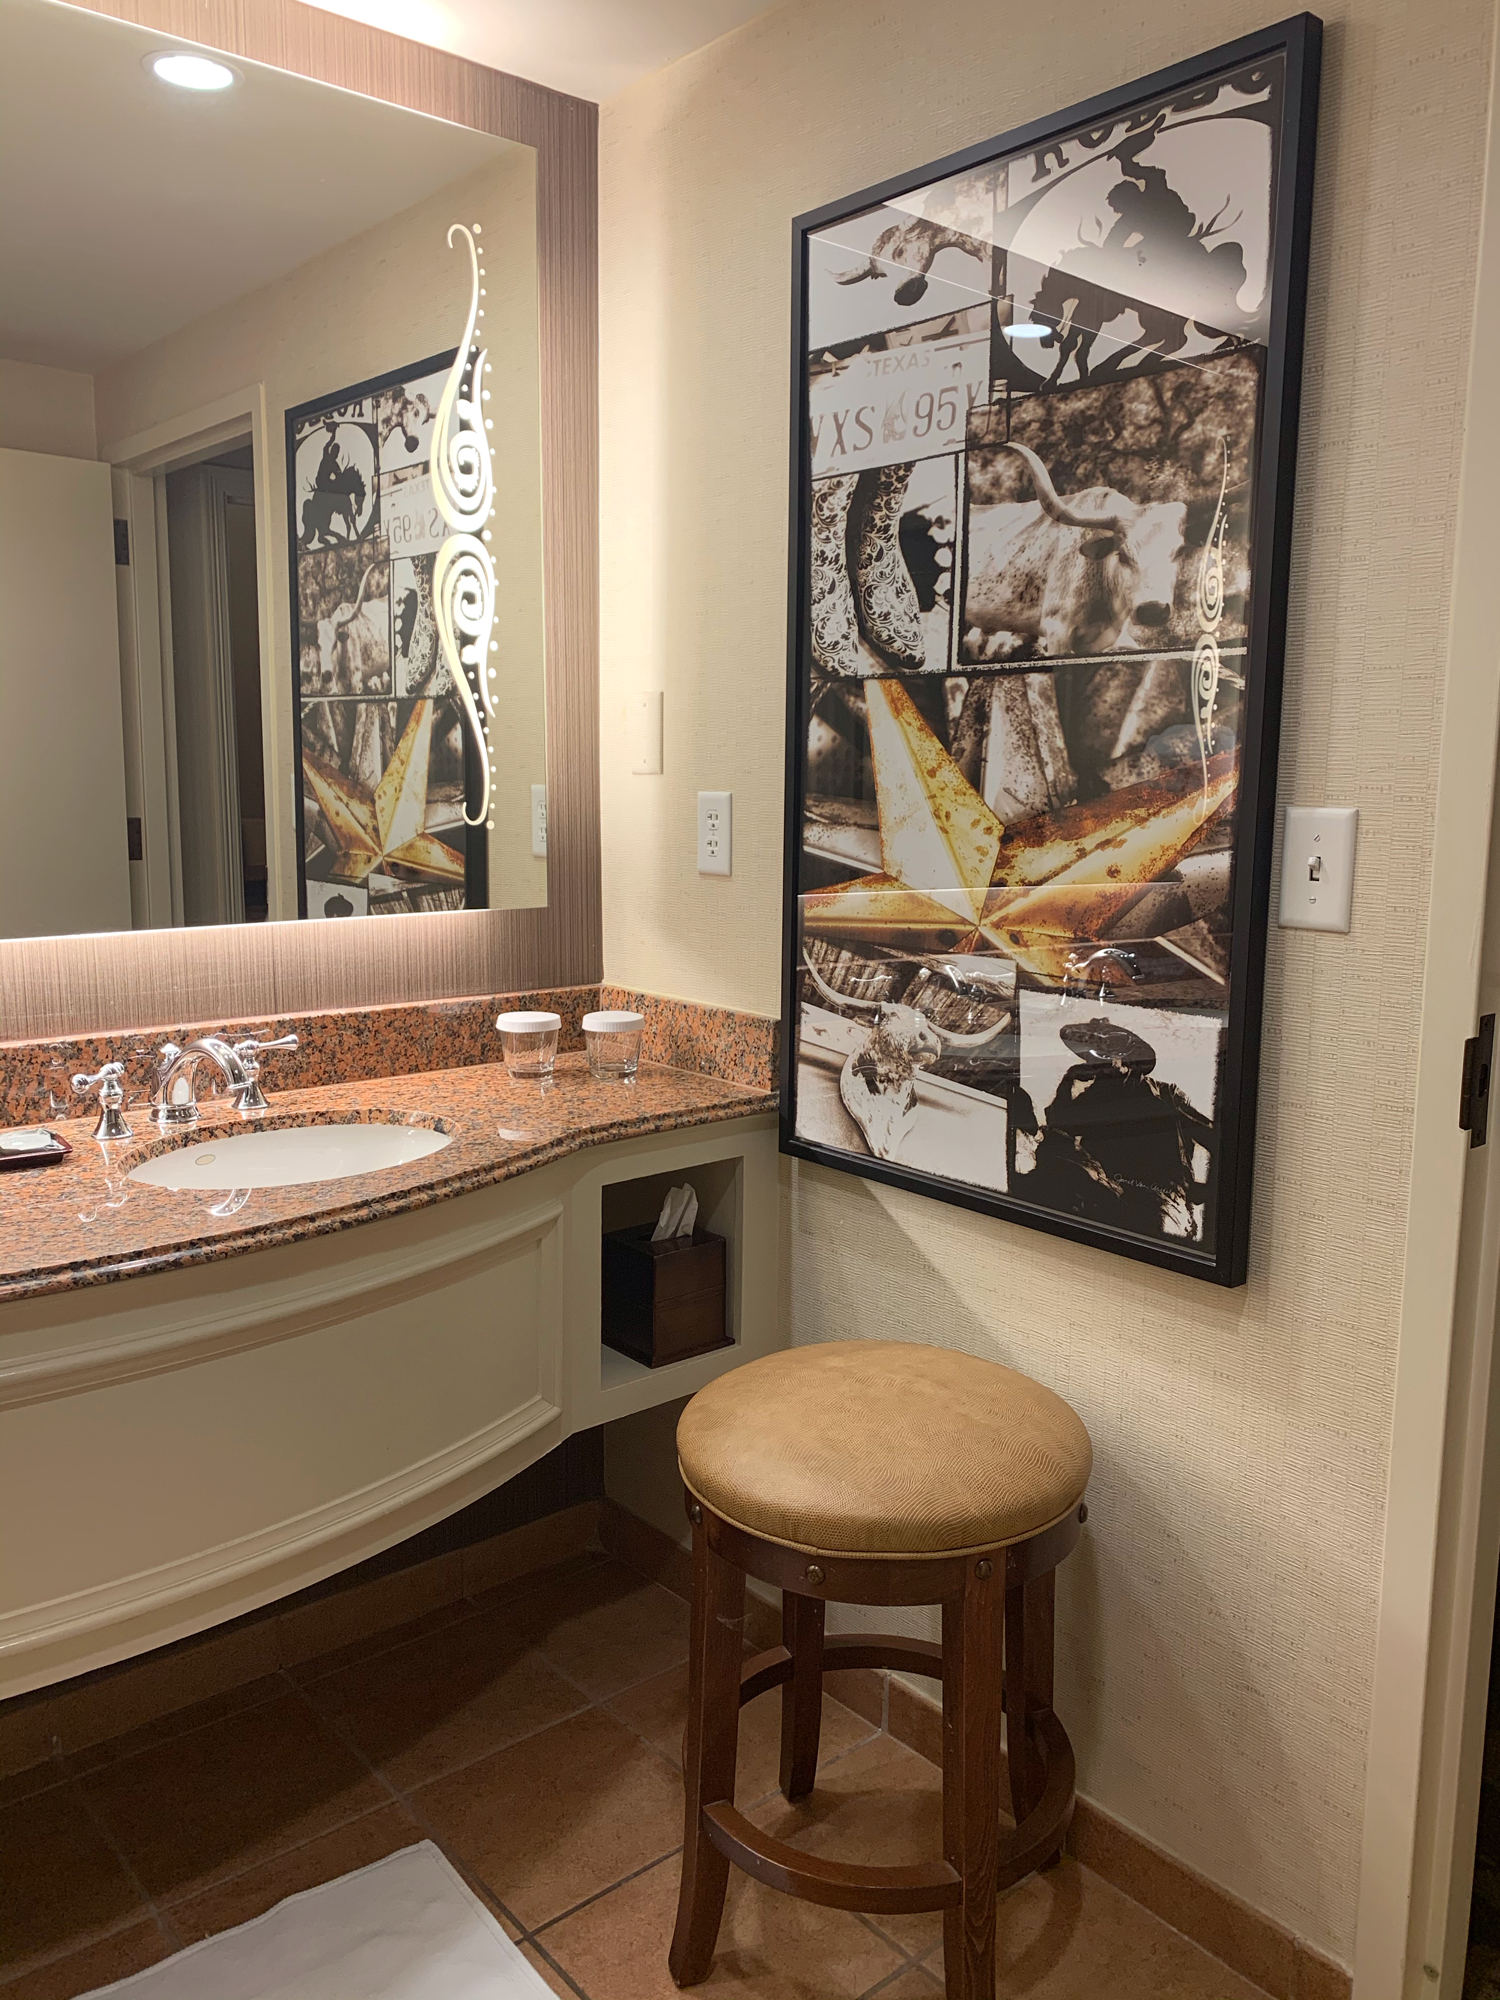 suite bathroom at gaylord hotel